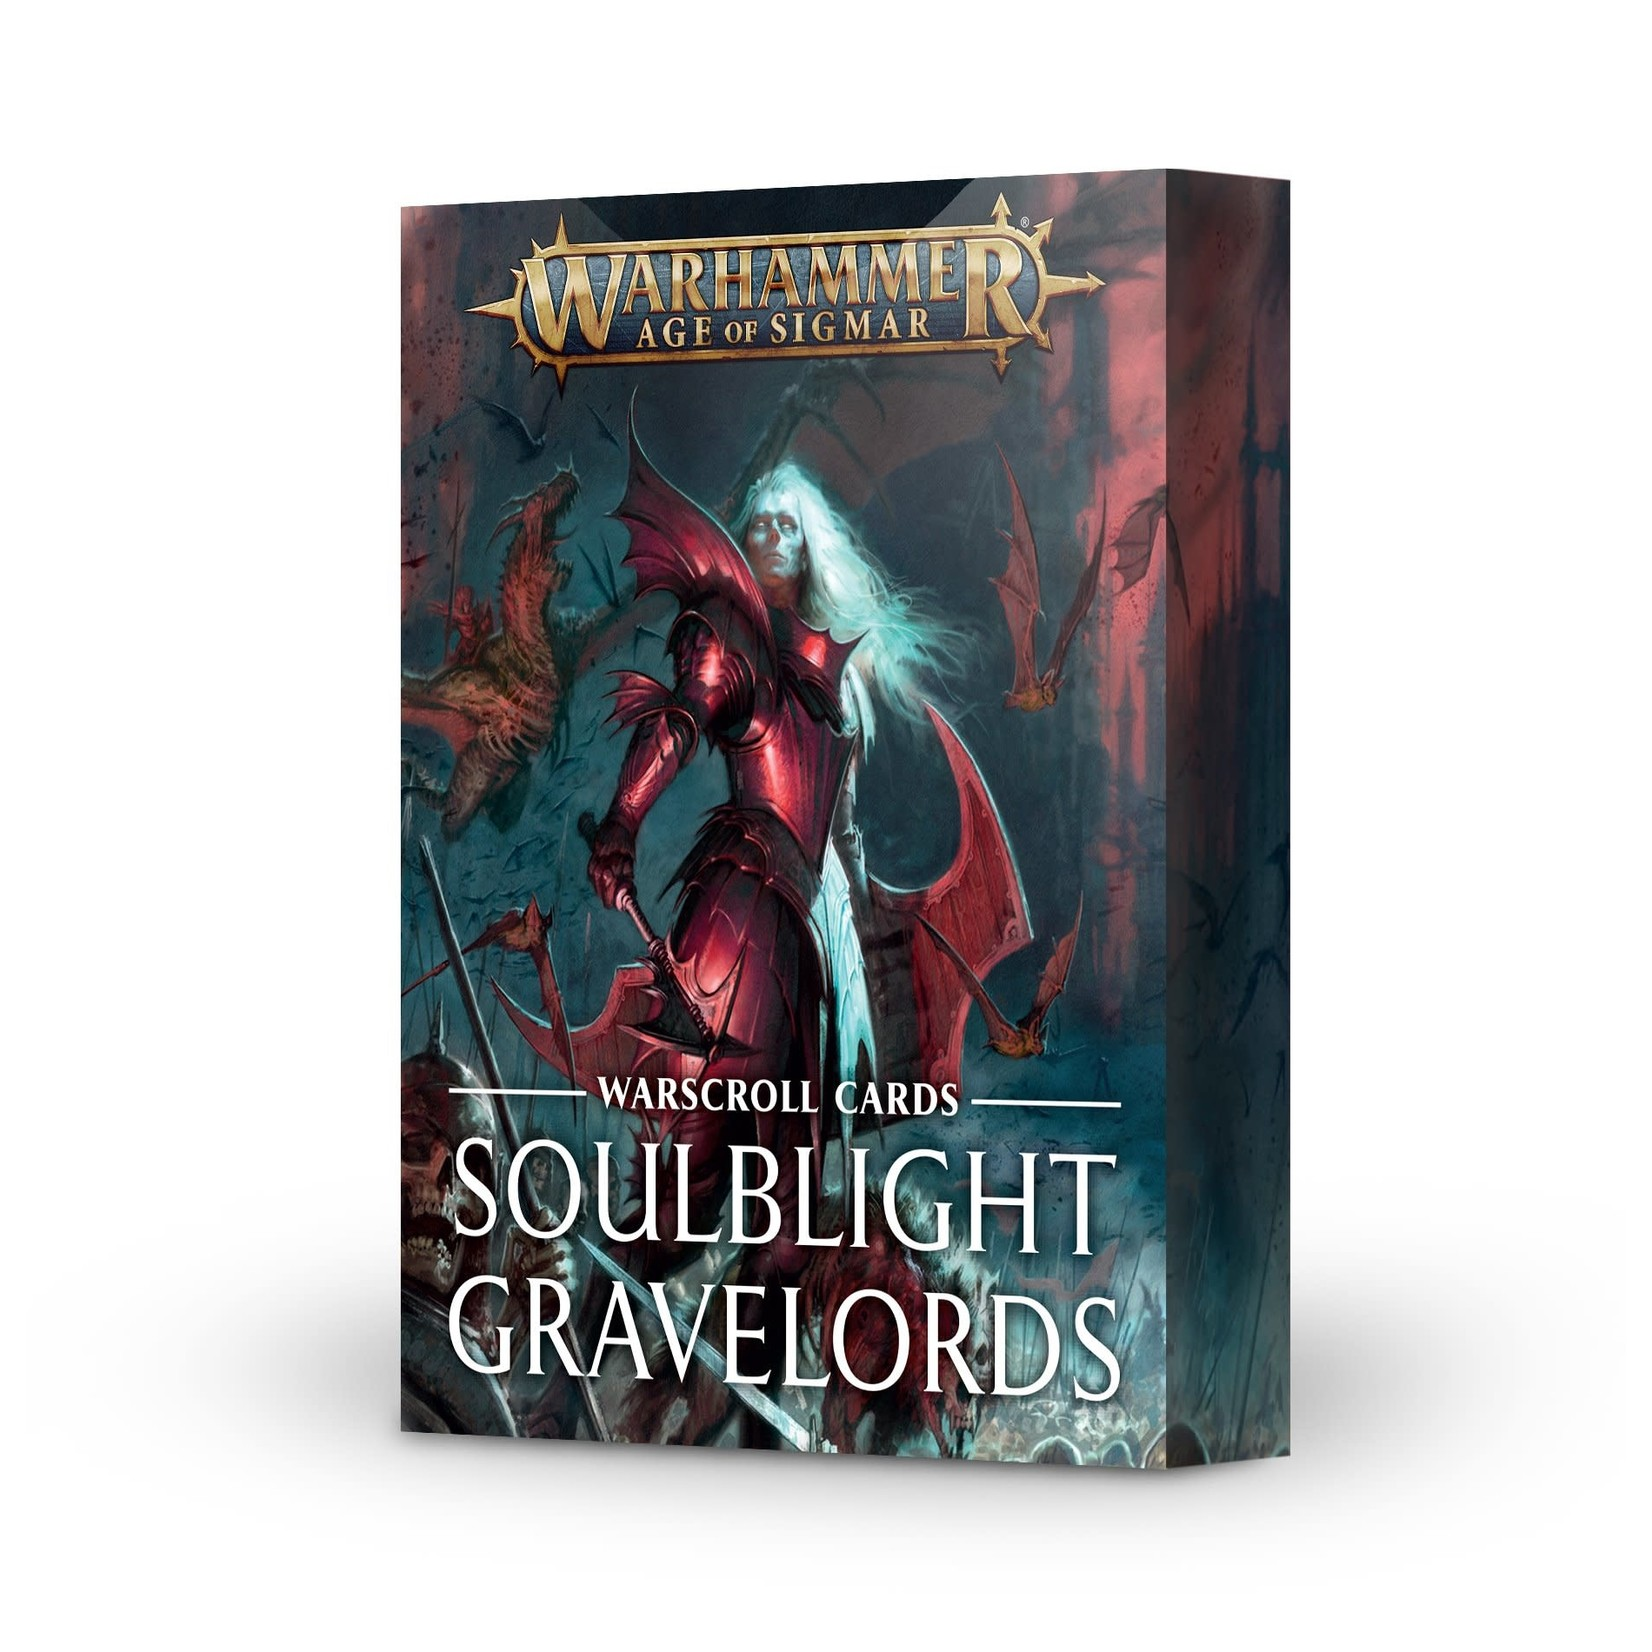 Warscroll Cards Soulblight Gravelords (AOS)